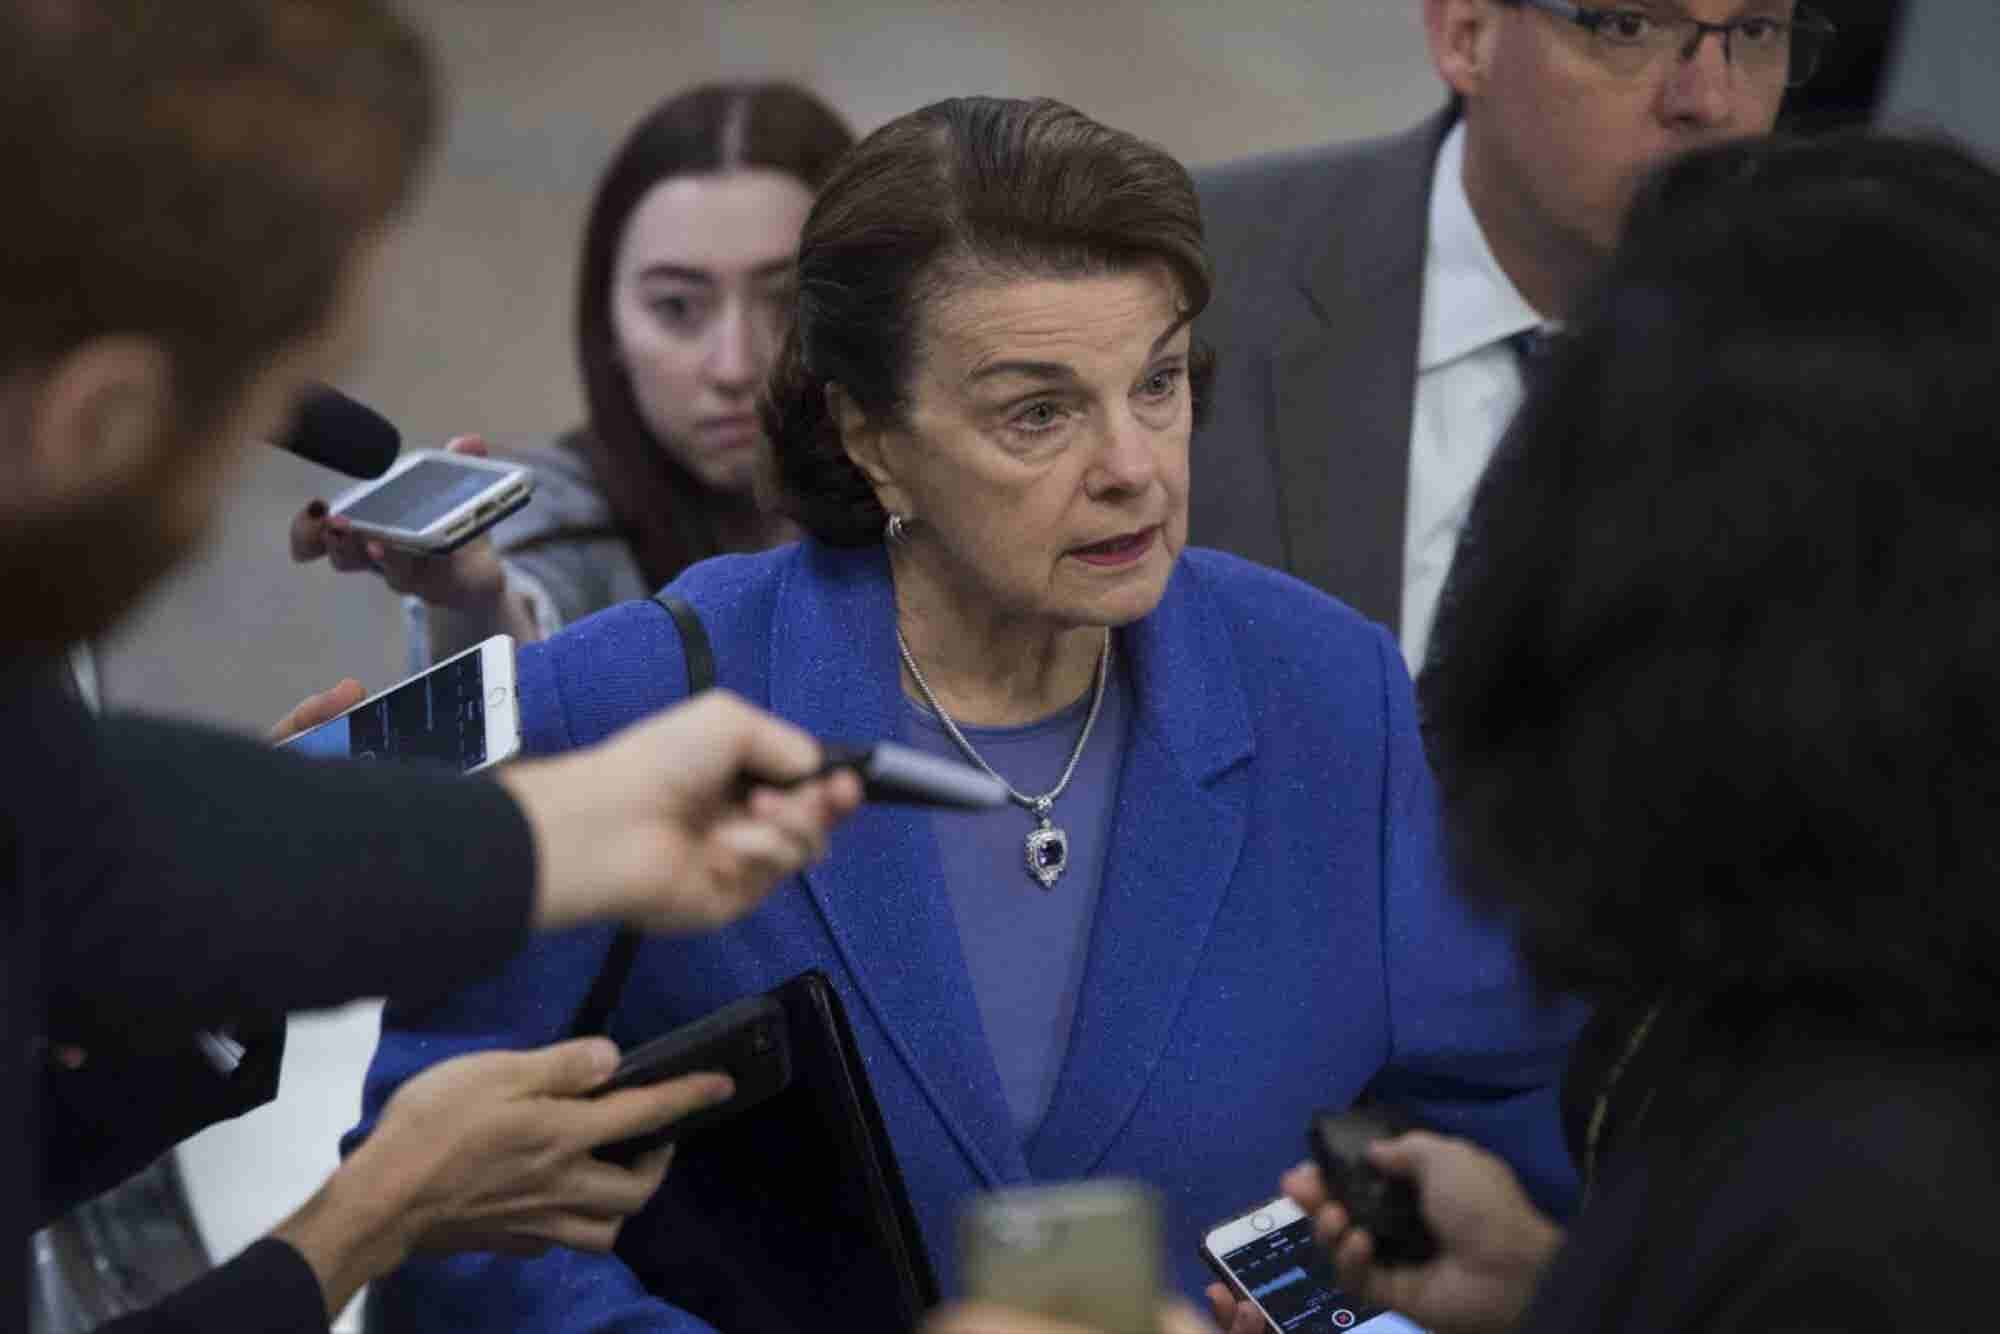 You Would Have Thought This Liberal Senator Already Supported Legal Ma...